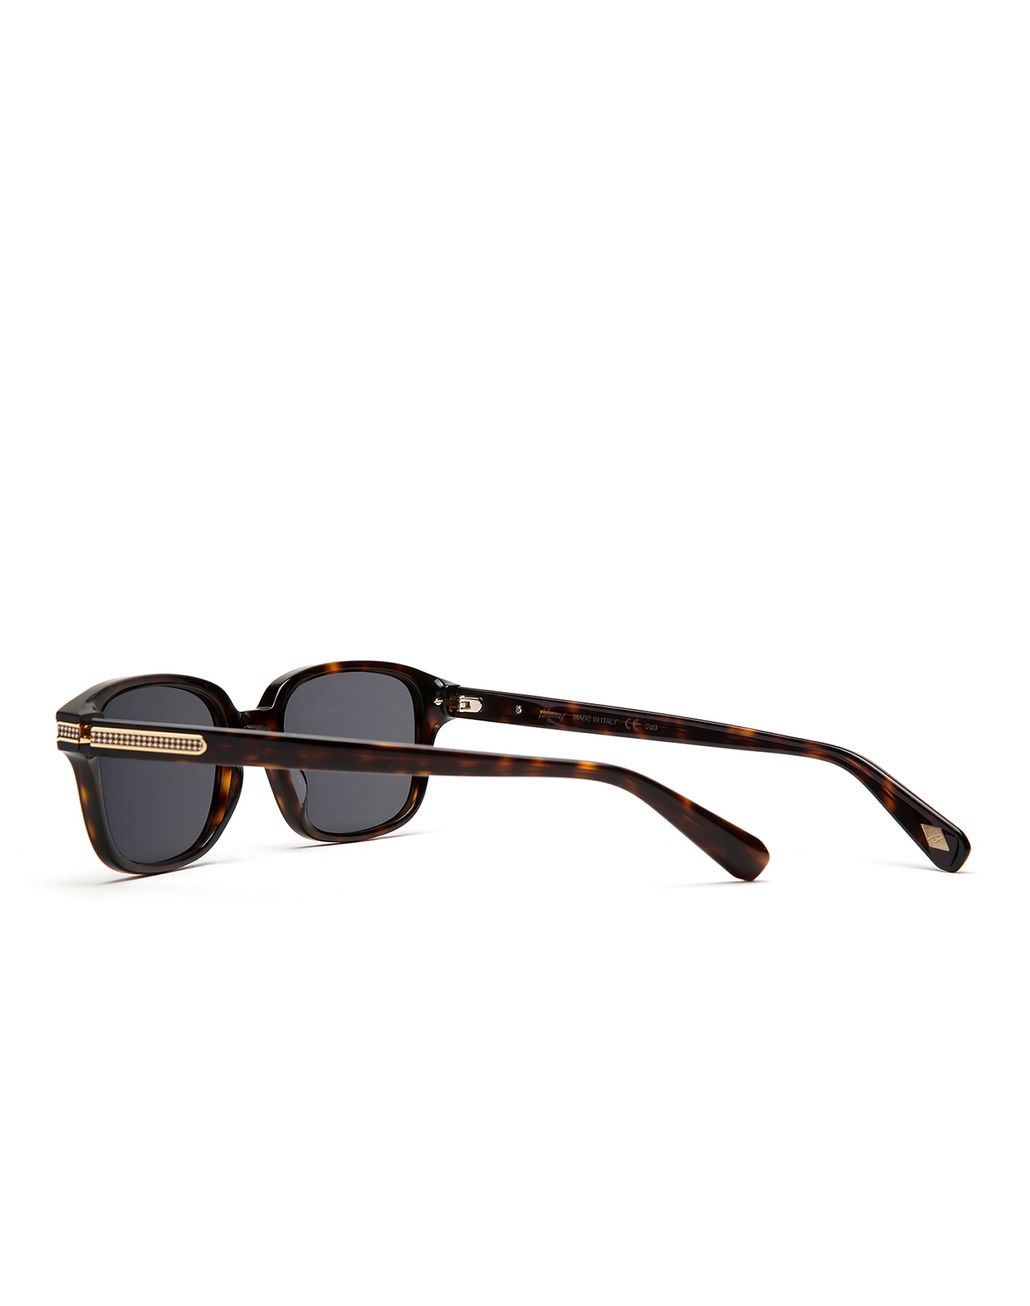 BRIONI Havana Squared Sunglasses with Green Lenses  Sunglasses Man d